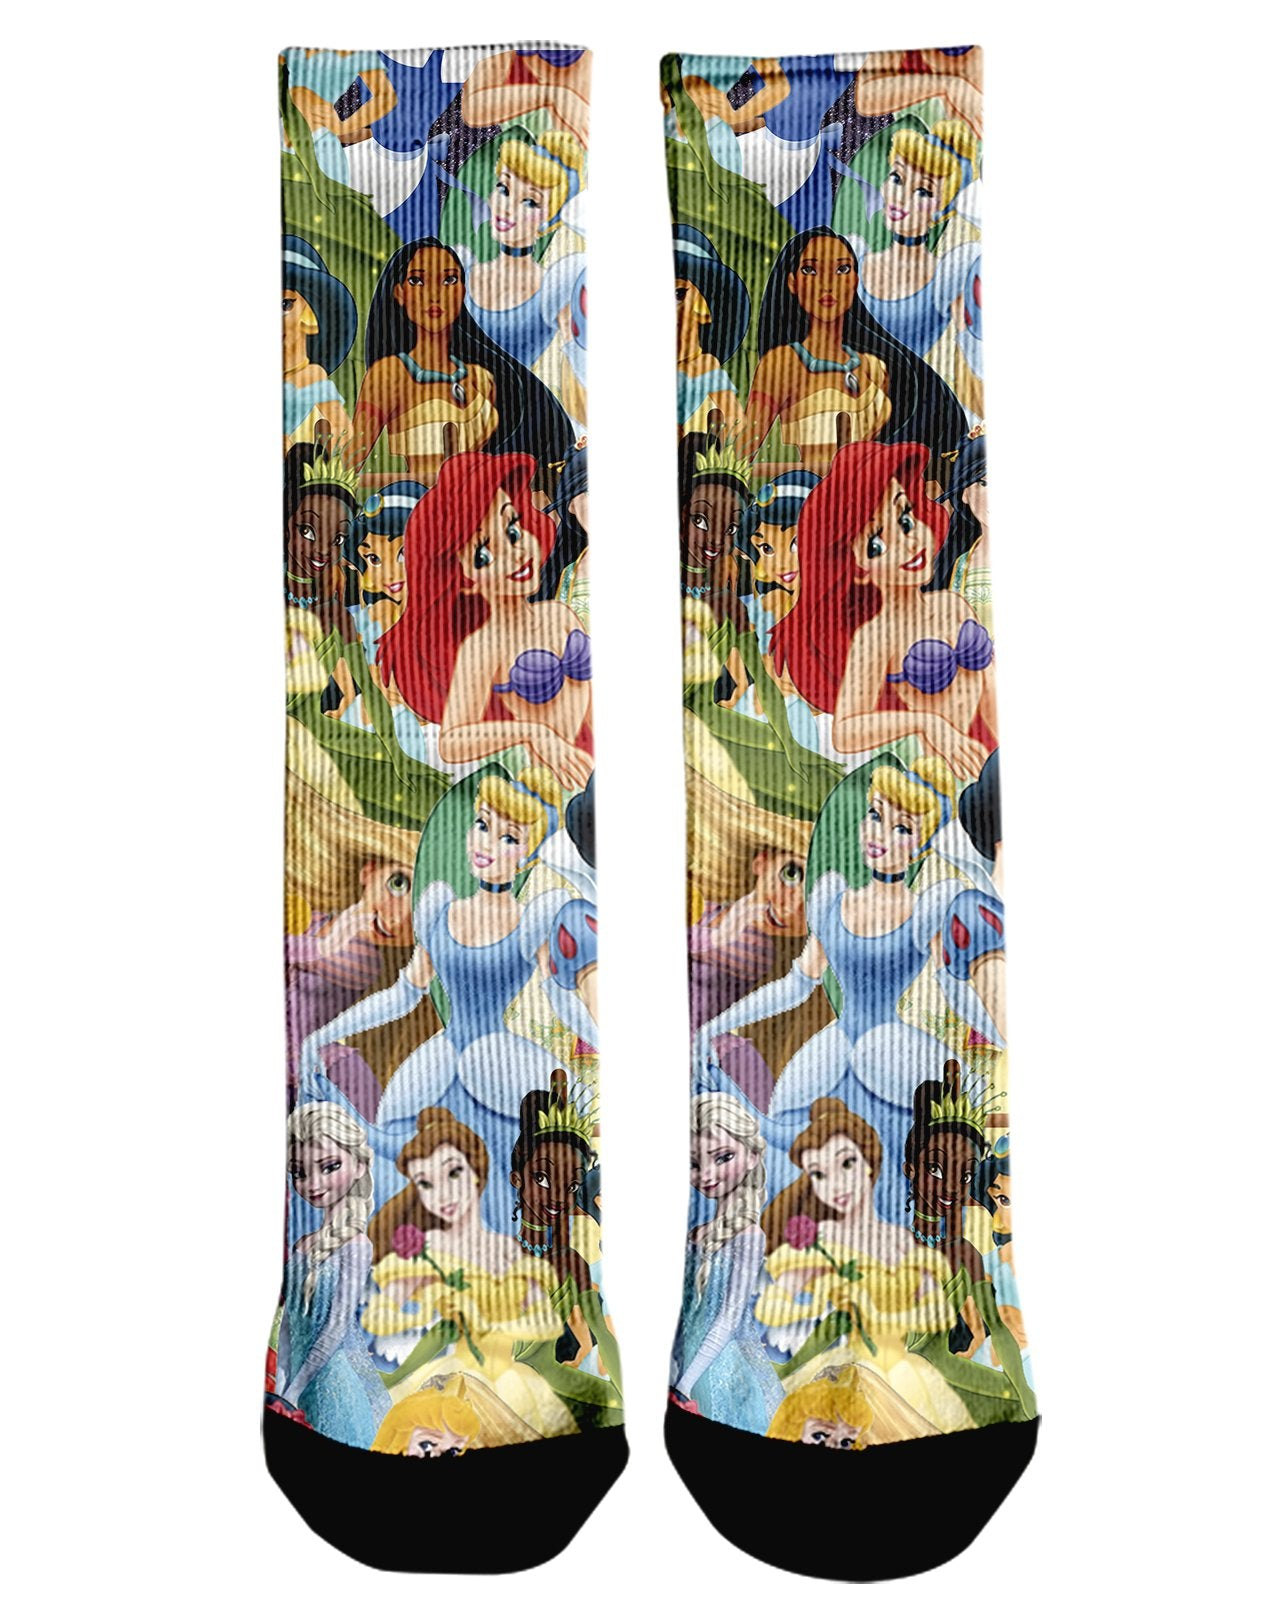 Disney Princesses Crew Socks